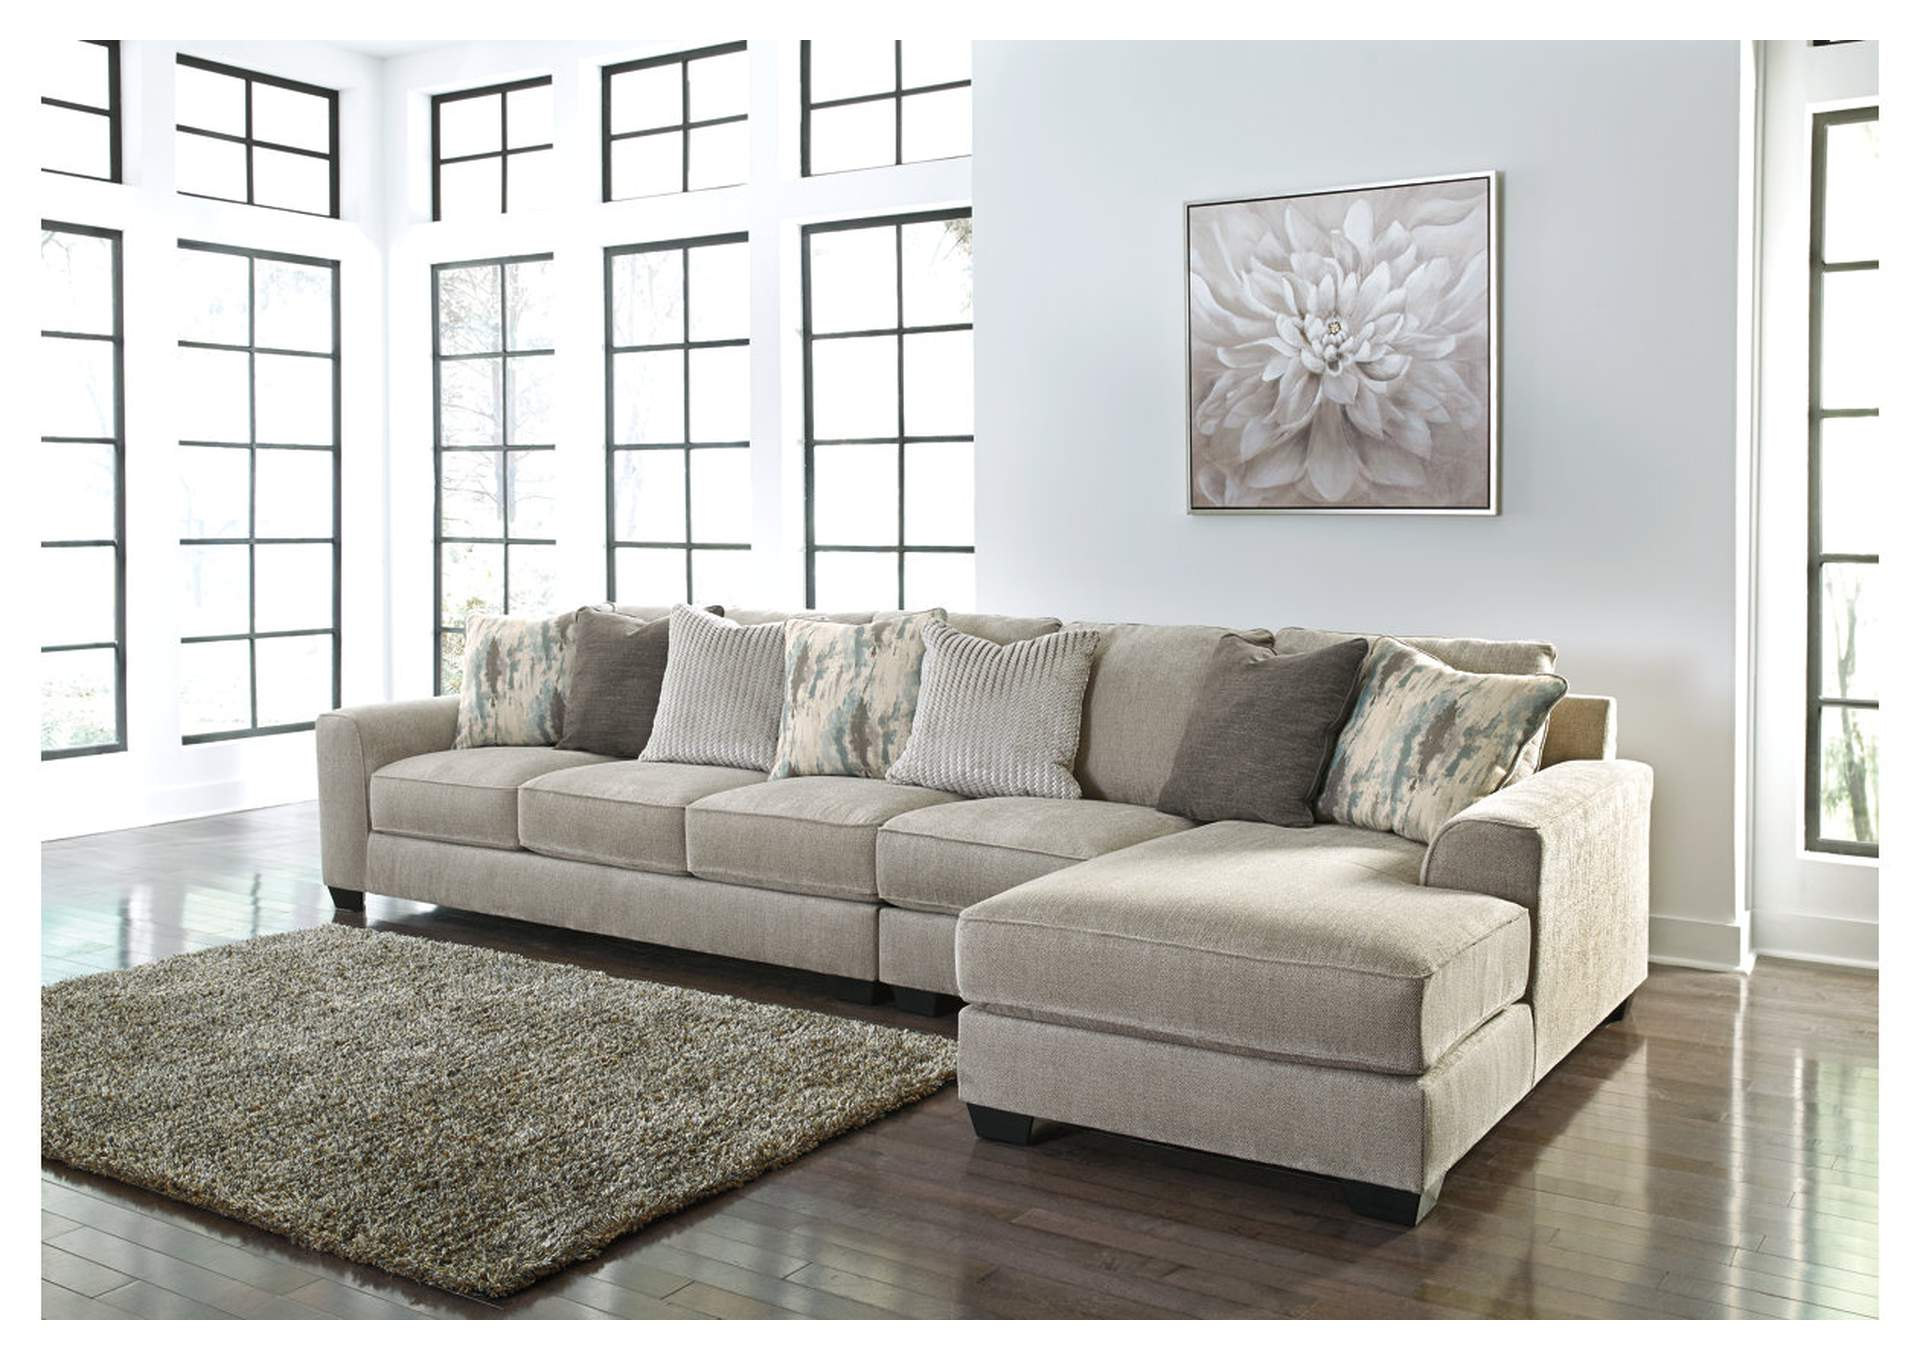 Ardsley 3-Piece Sectional with Chaise,Benchcraft